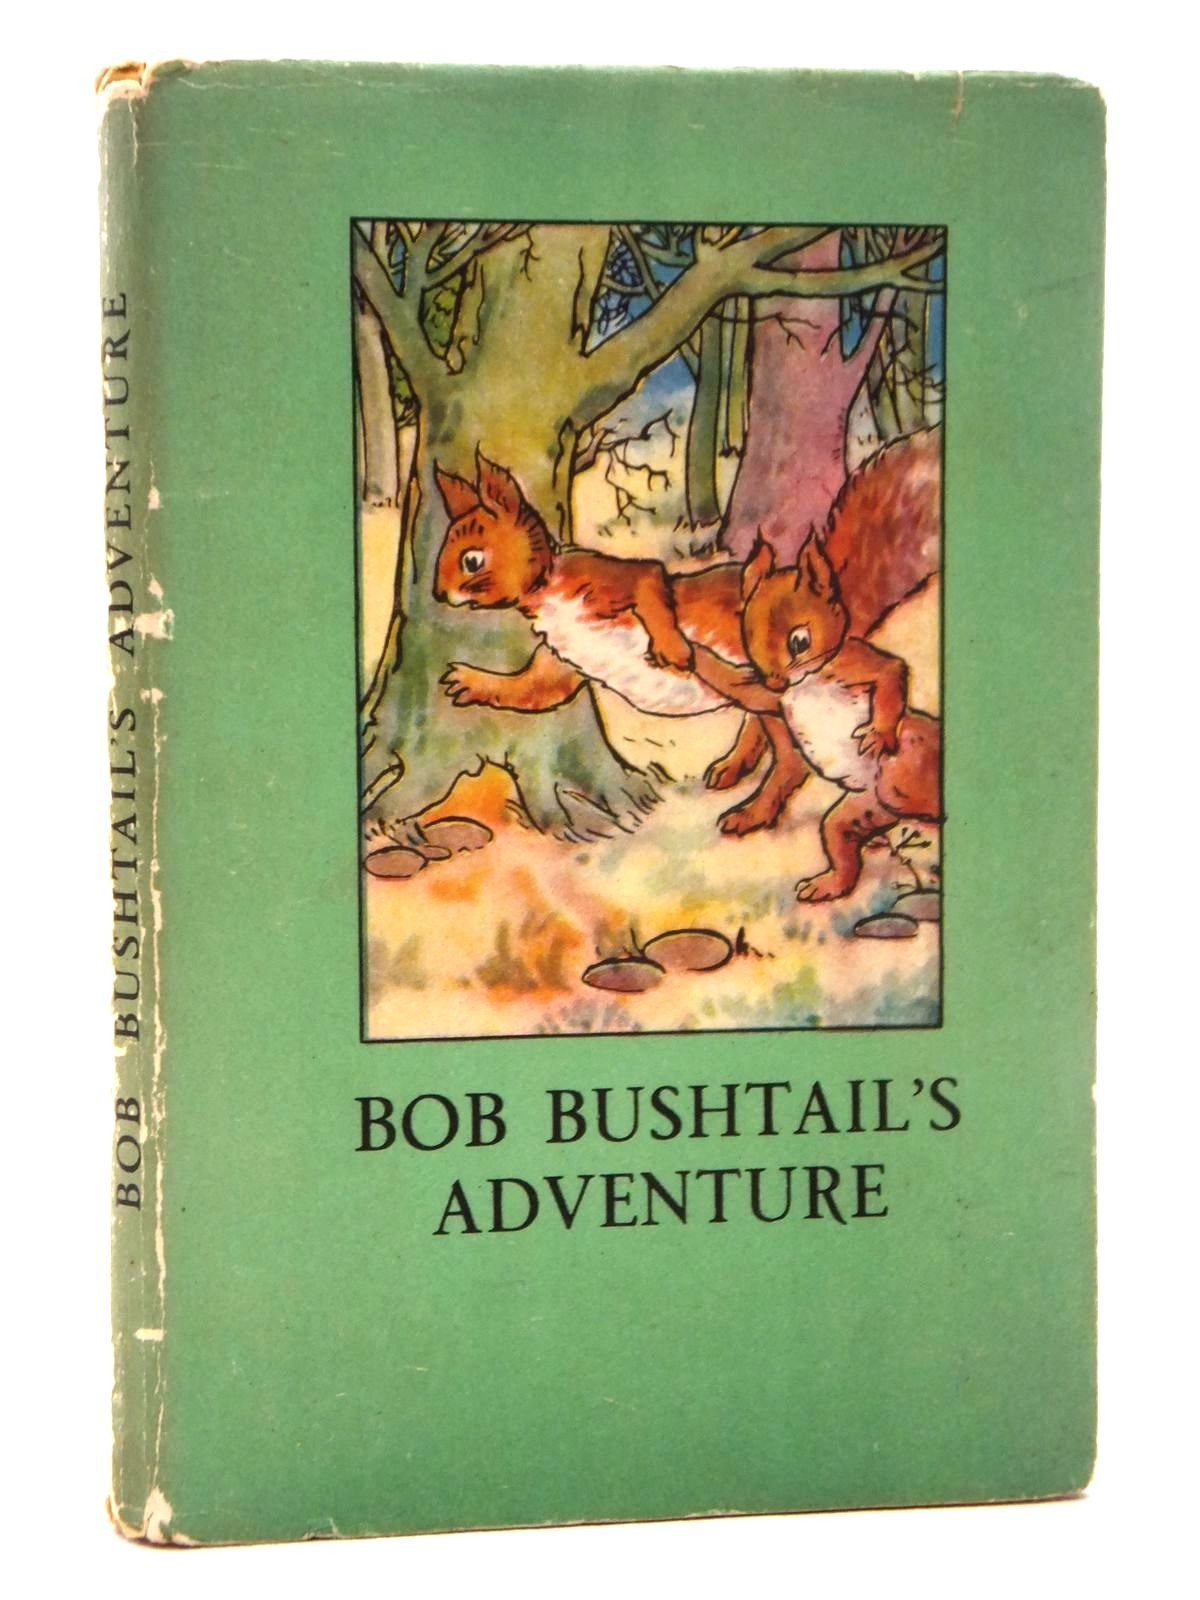 Photo of BOB BUSHTAIL'S ADVENTURE written by Macgregor, A.J. Perring, W. illustrated by Macgregor, A.J. published by Wills & Hepworth Ltd. (STOCK CODE: 2123808)  for sale by Stella & Rose's Books